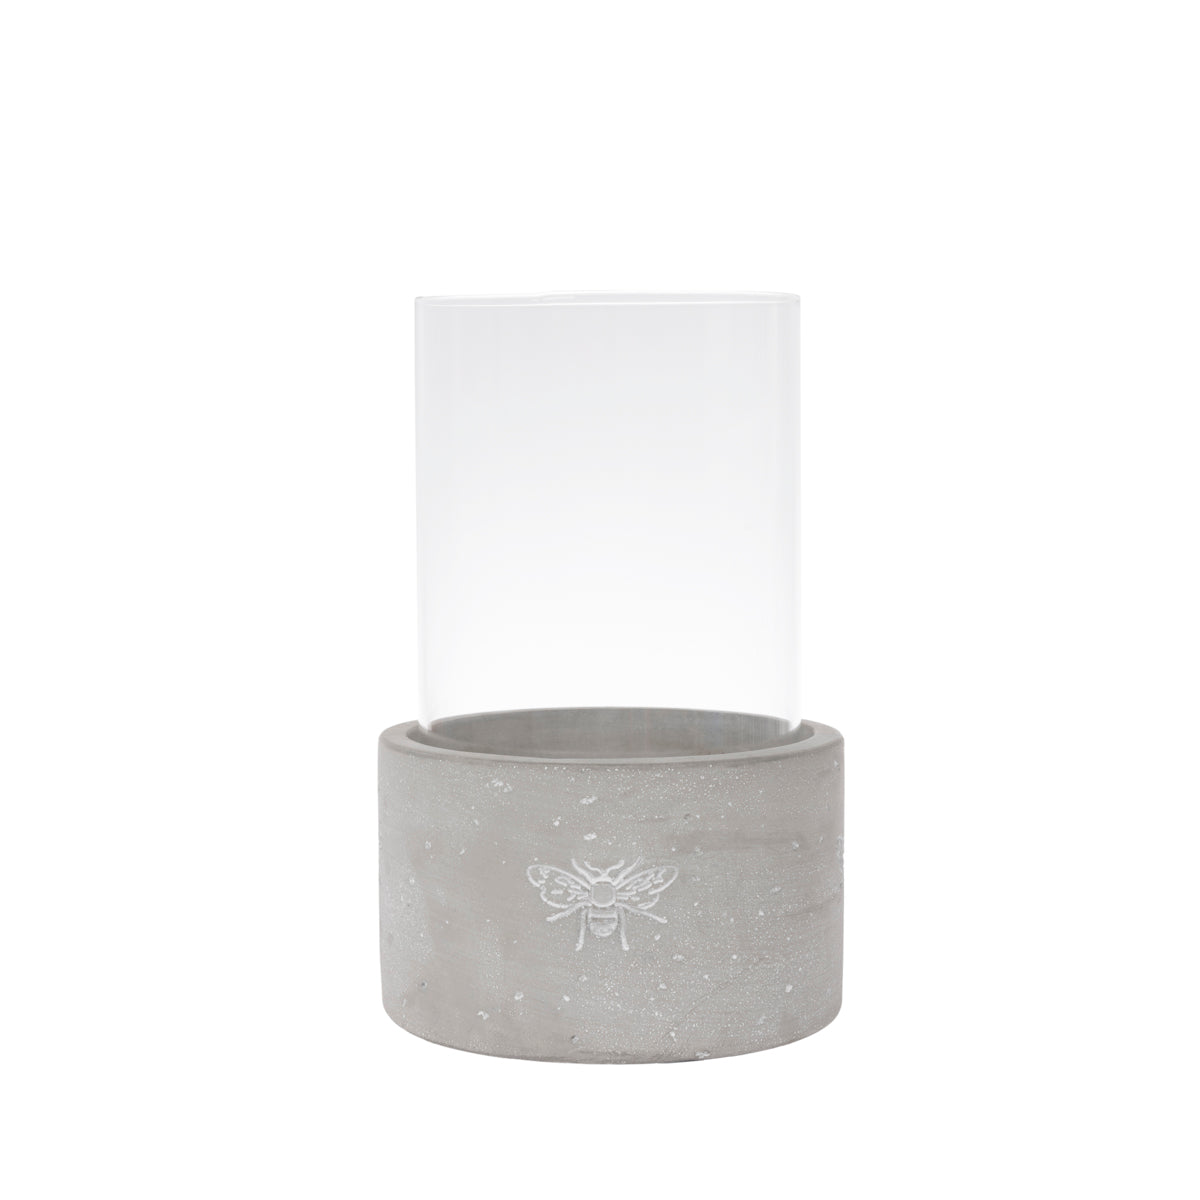 Bees Candle Holder by Sophie Allport